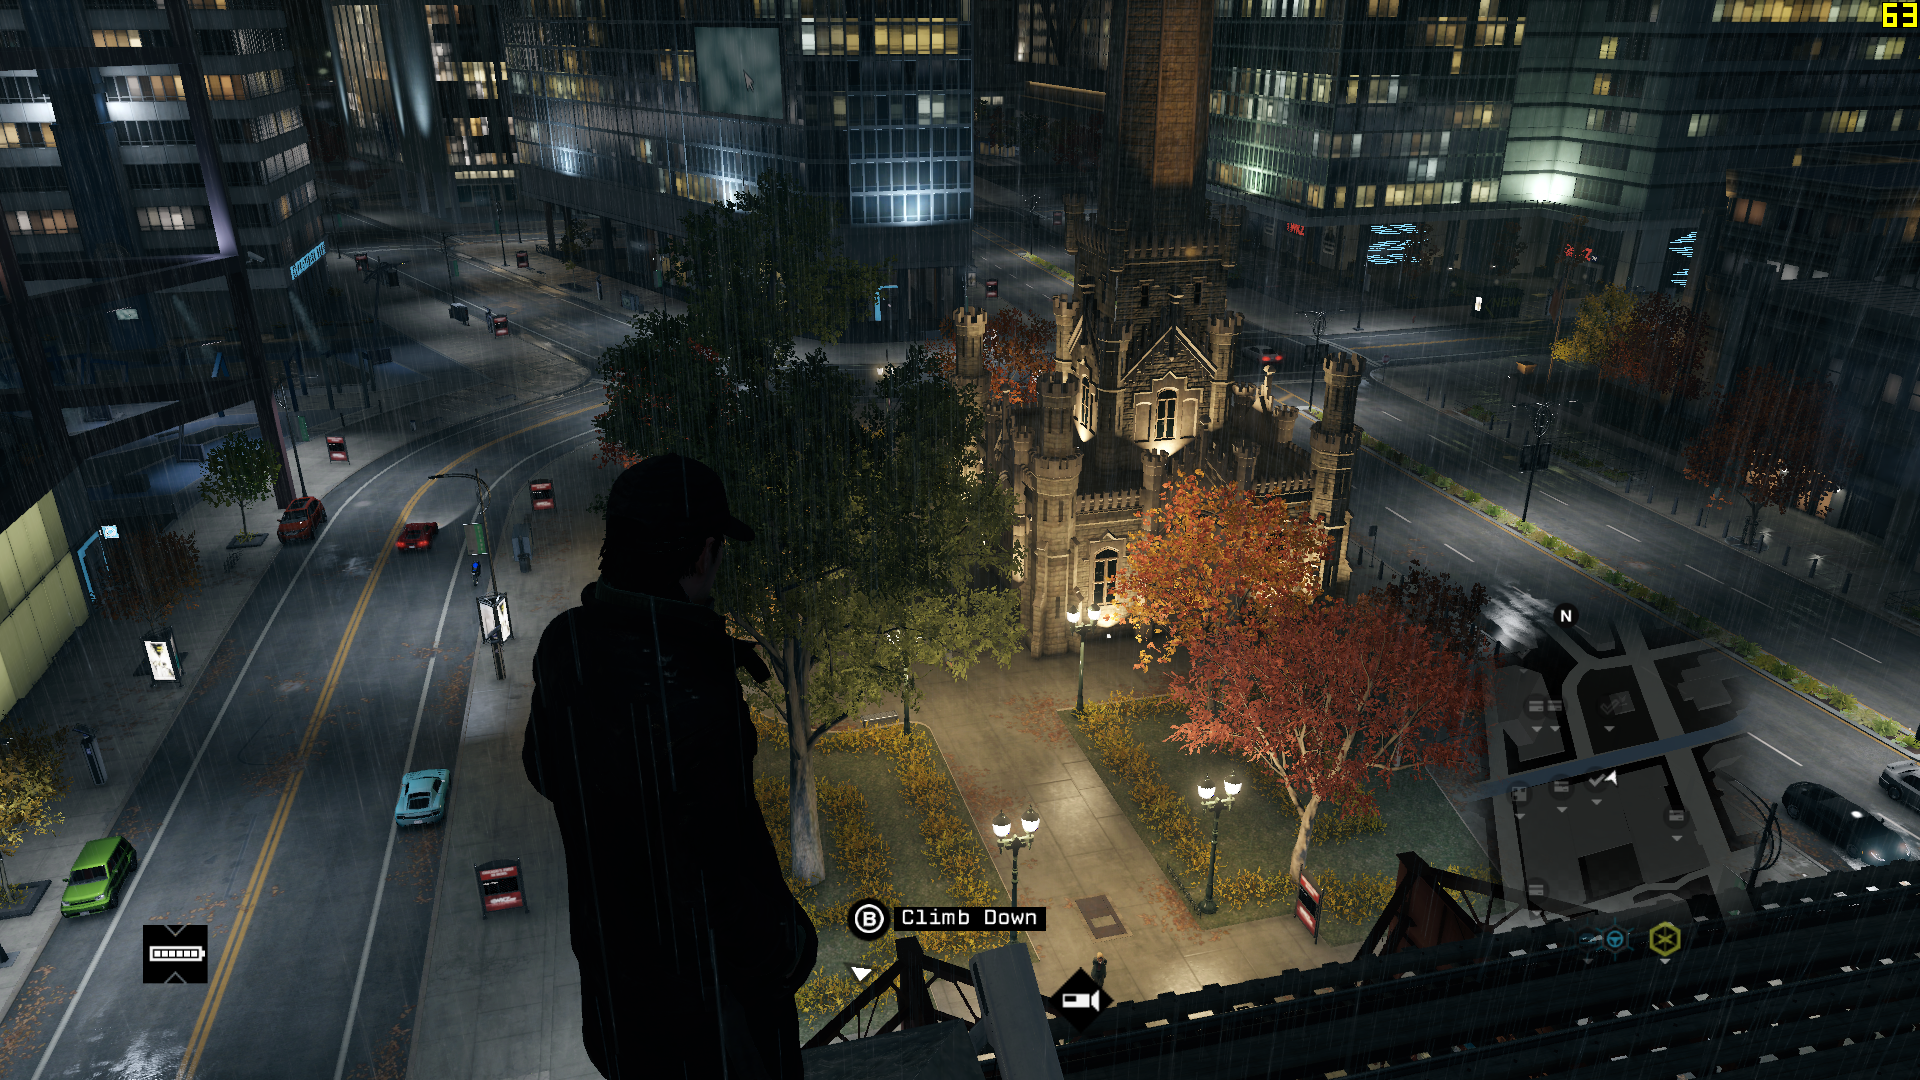 watch_dogs2014-06-022b0j3e.png